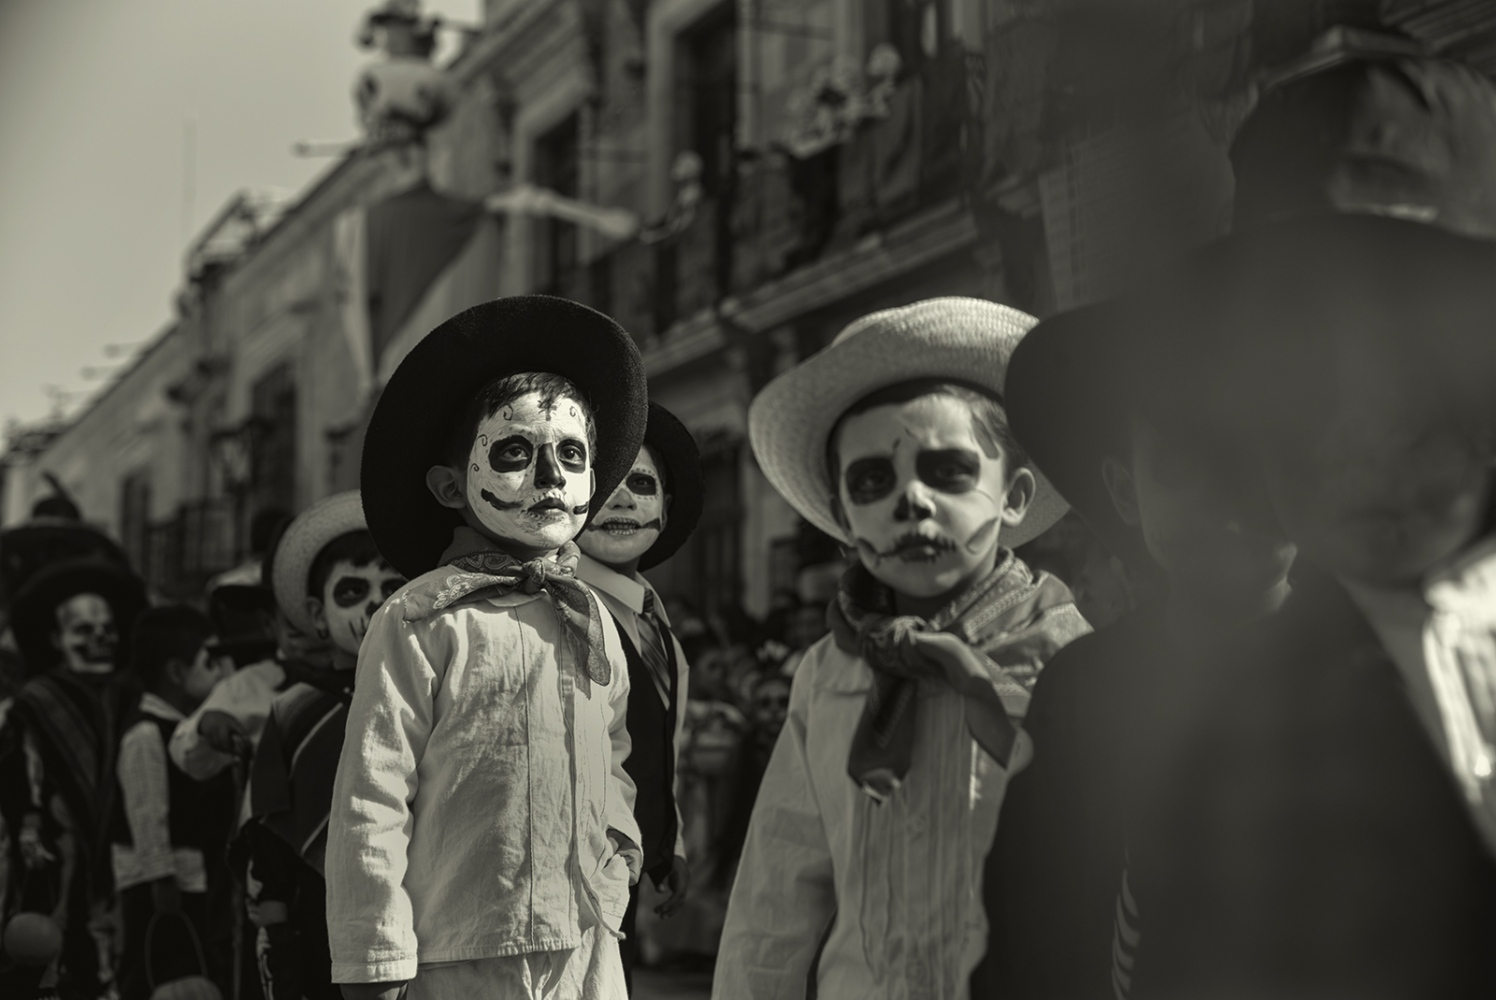 Childrens Day, Halloween, Oaxaca, Mexico,October 2017 .